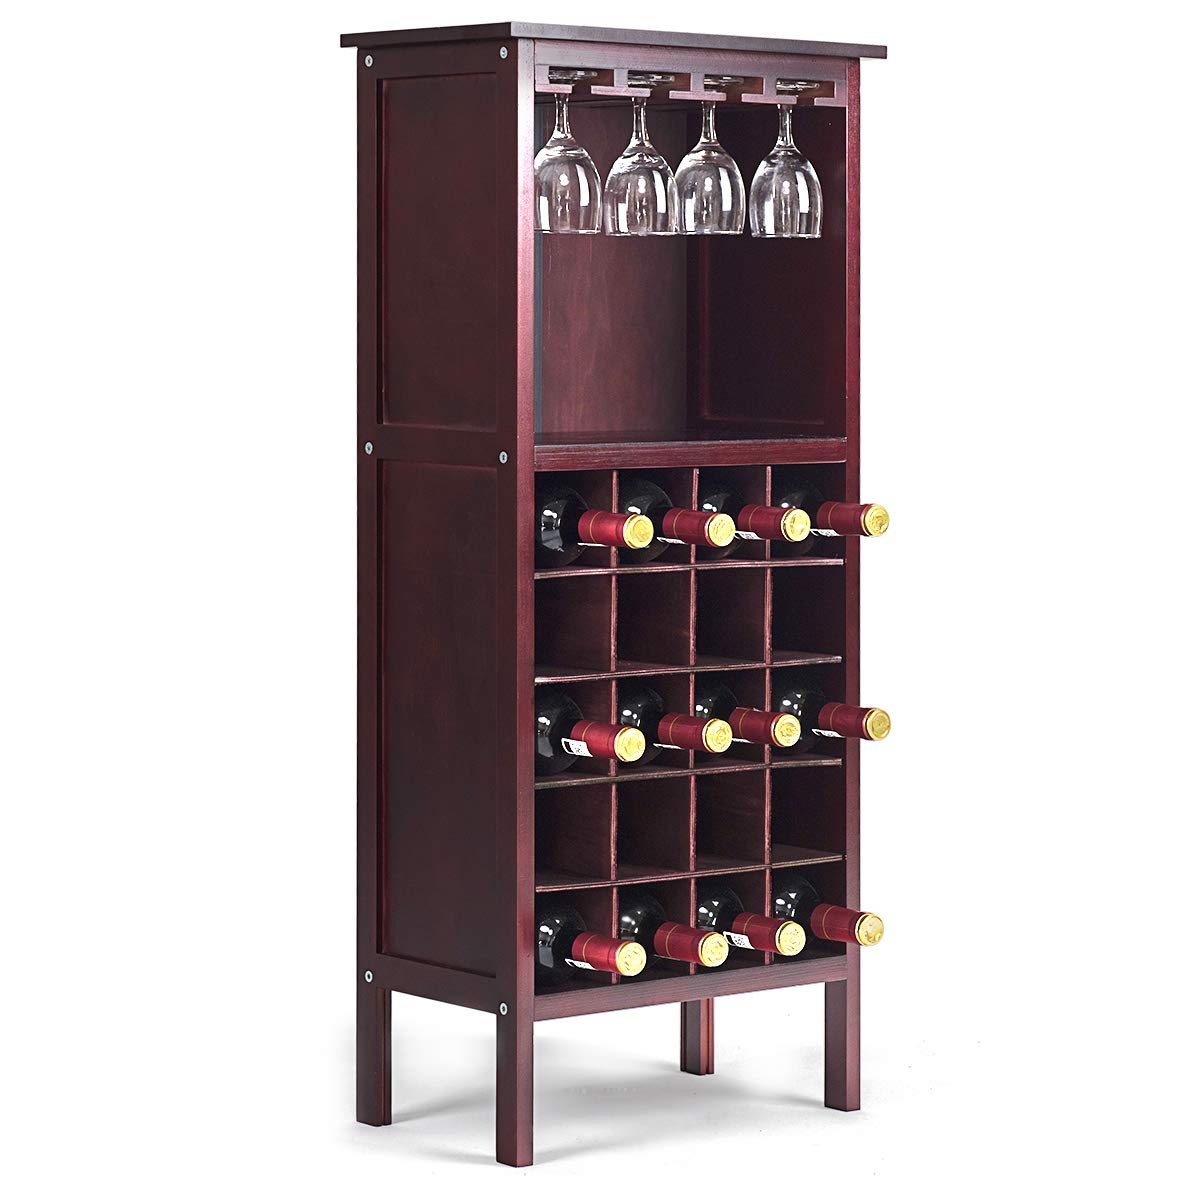 Giantex 20 Bottle Wine Cabinet Wood Wine Rack Bottle Holder Storage Display Shelf Wine Bottle Organizer w/Glass Hanger